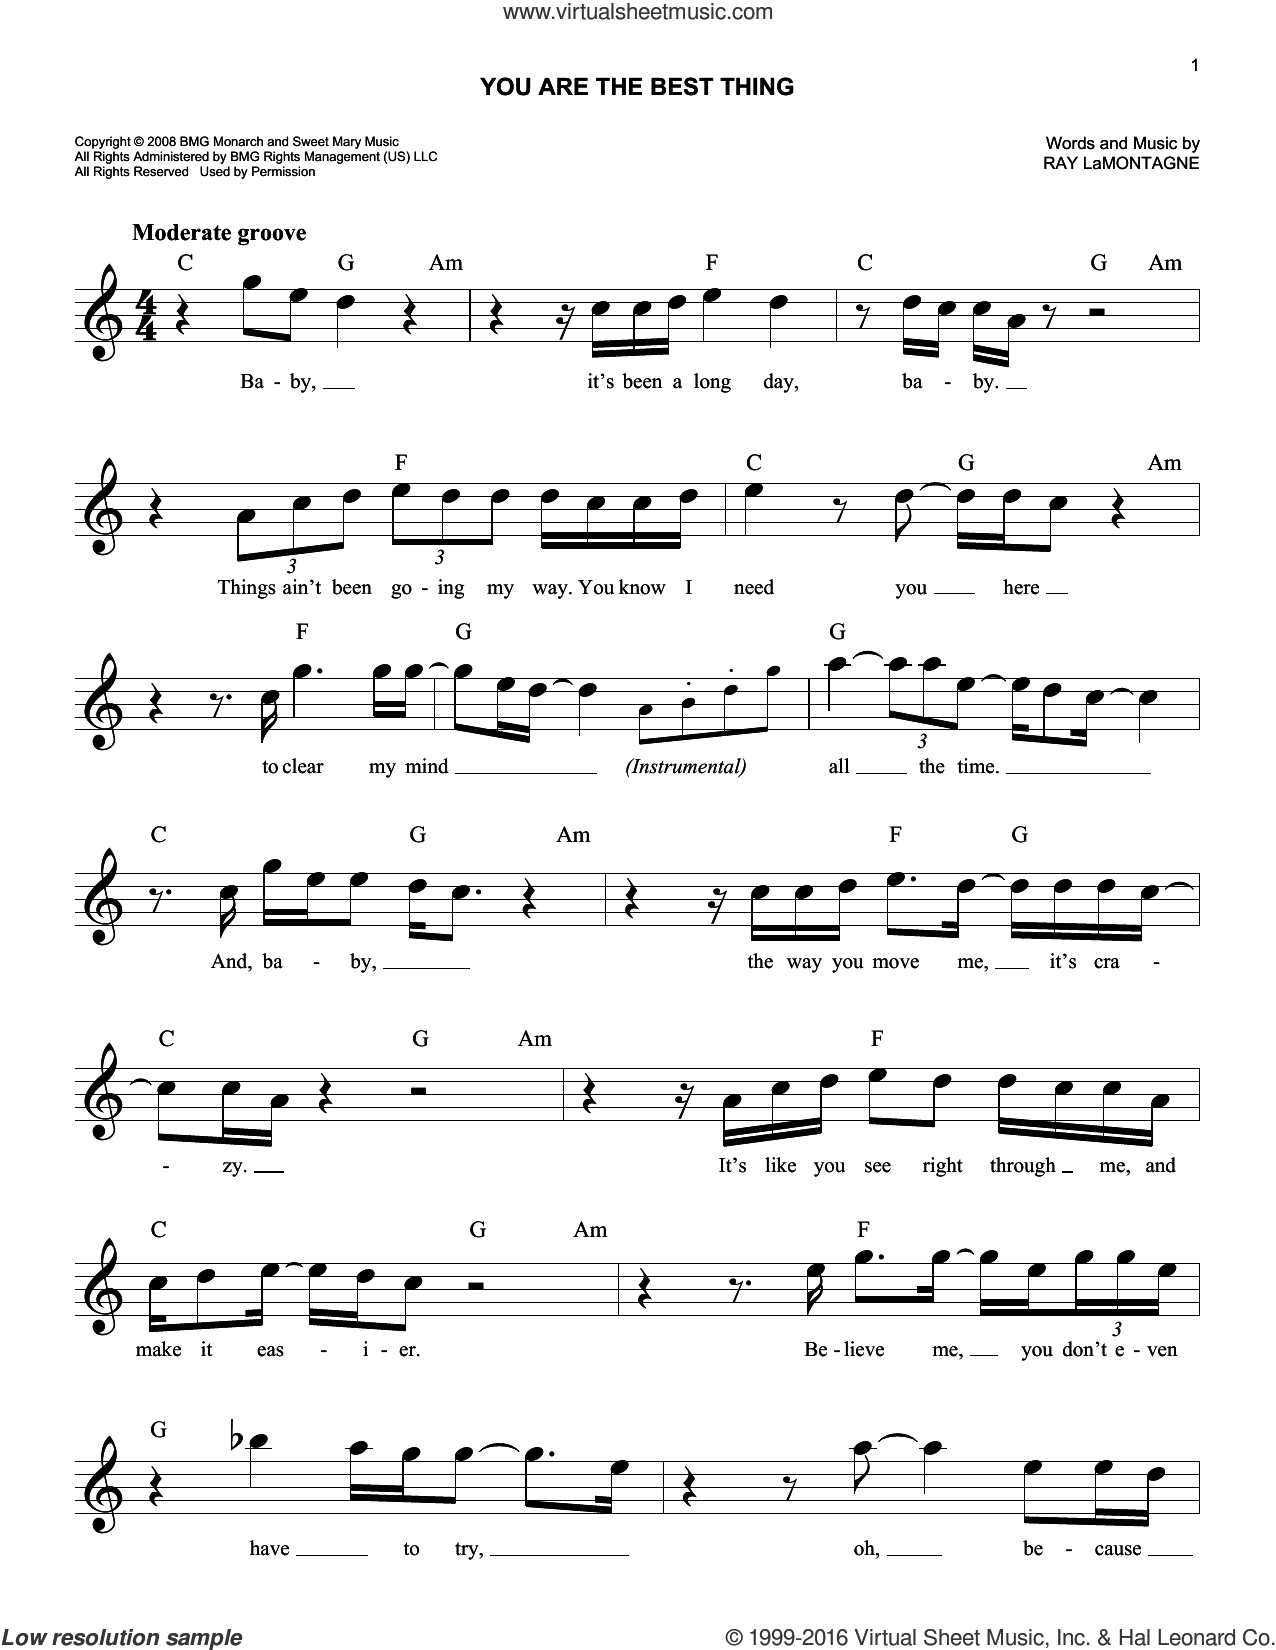 You Are The Best Thing sheet music for voice and other instruments (fake book) by Ray LaMontagne. Score Image Preview.